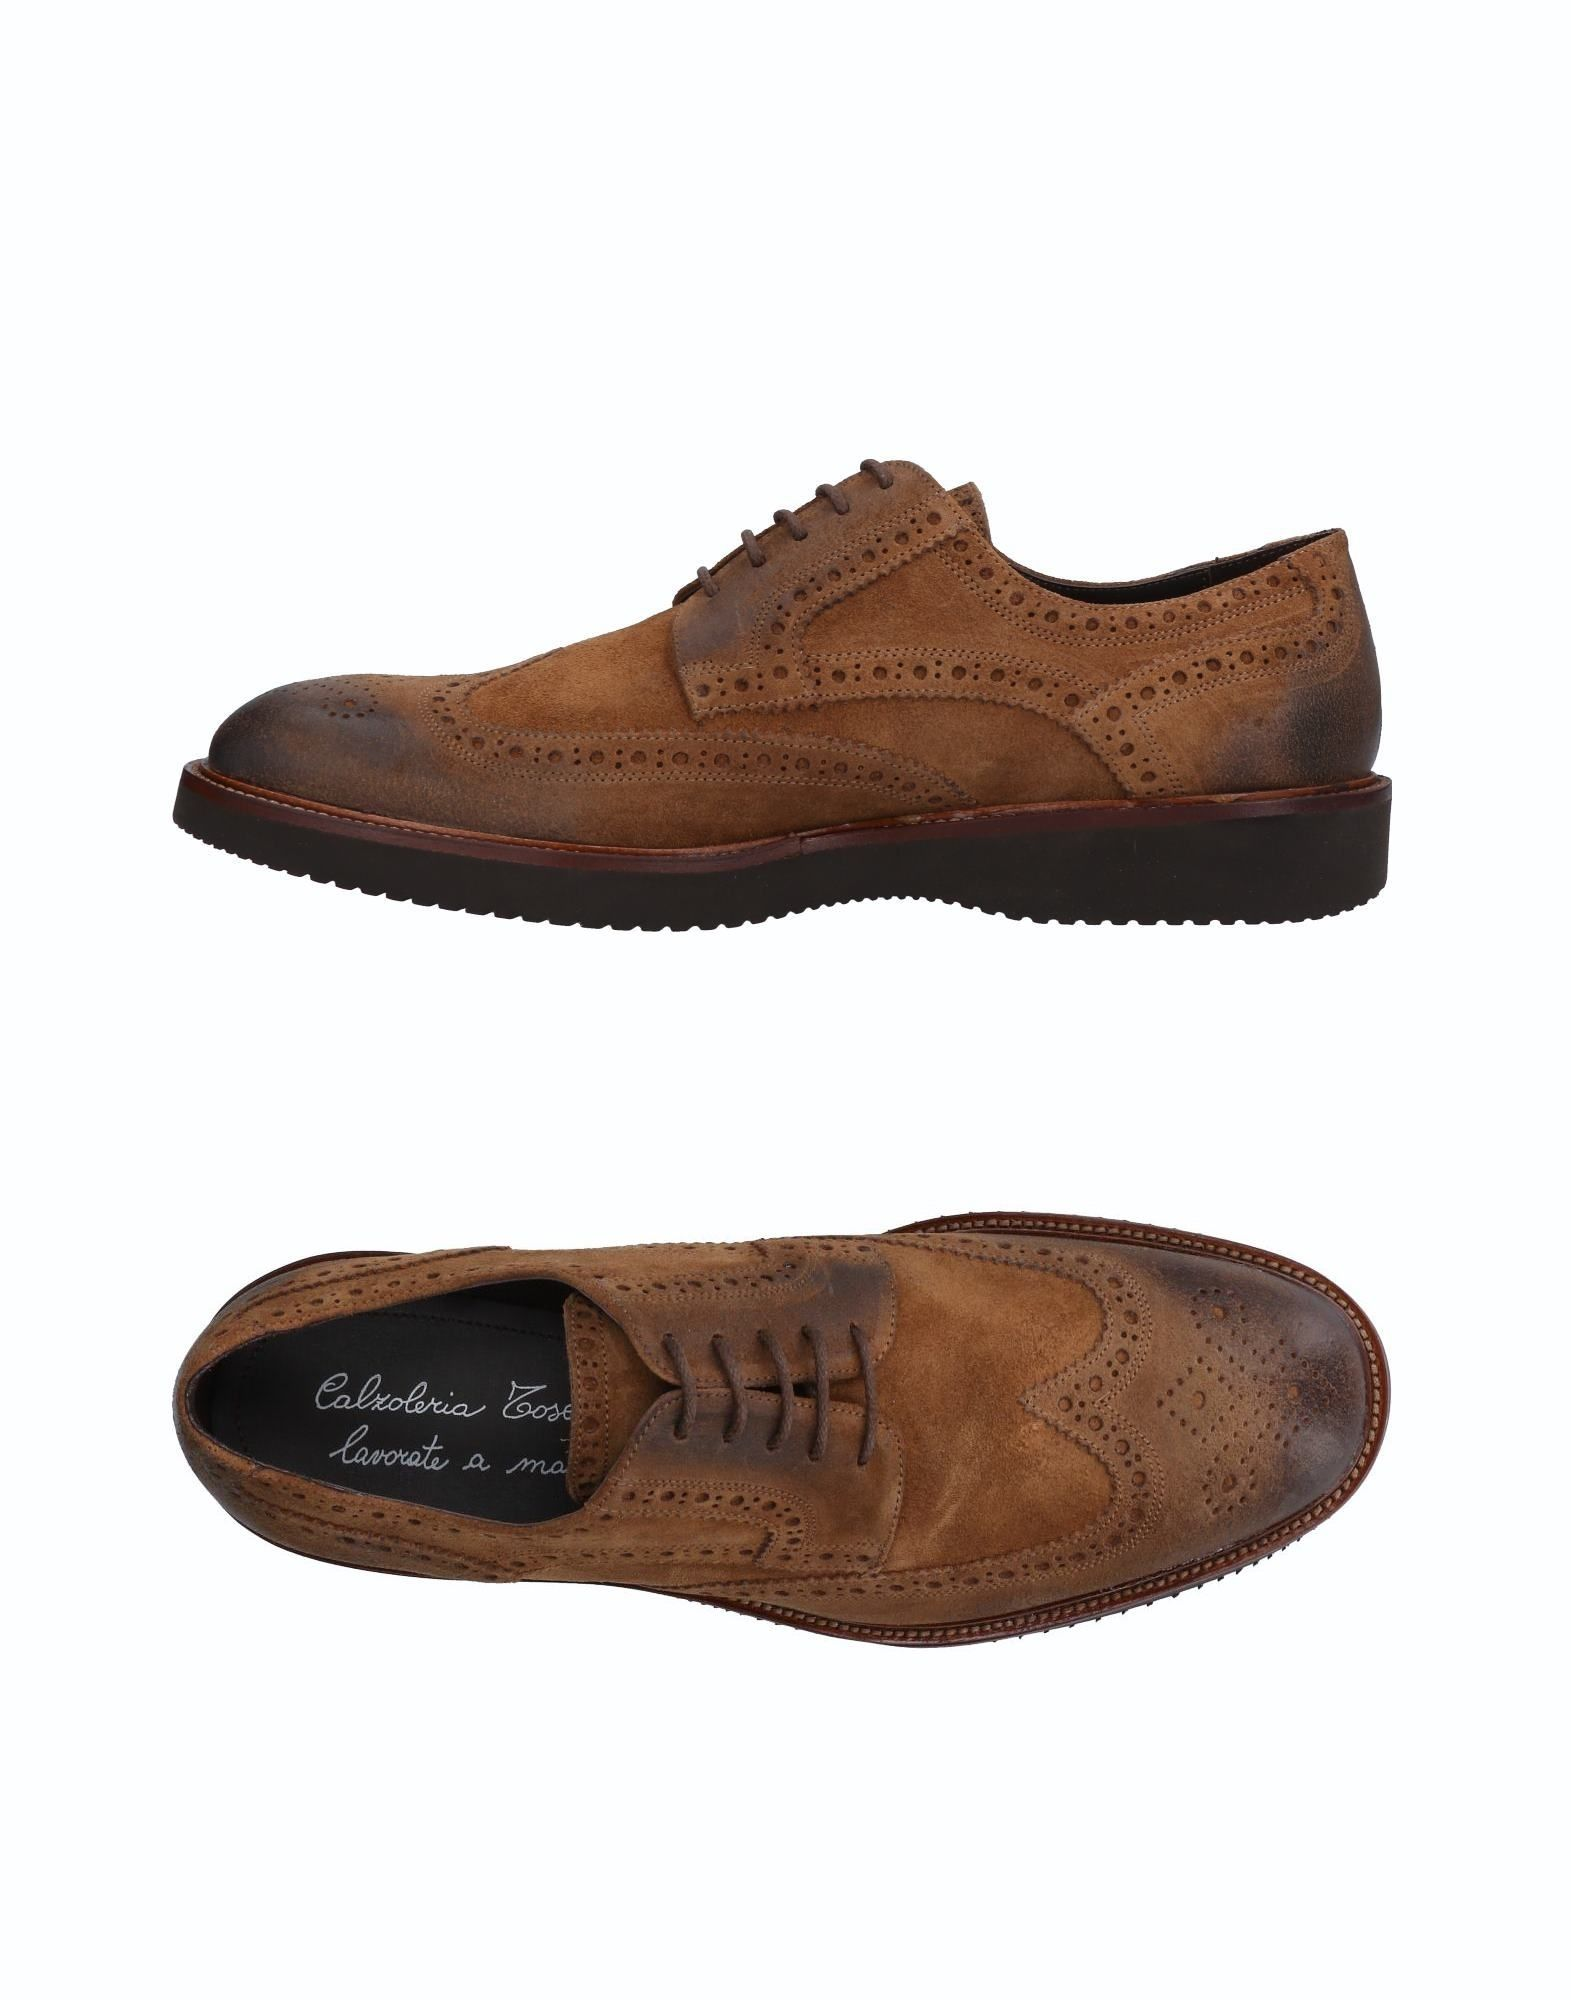 CALZOLERIA TOSCANA Laced Shoes in Brown